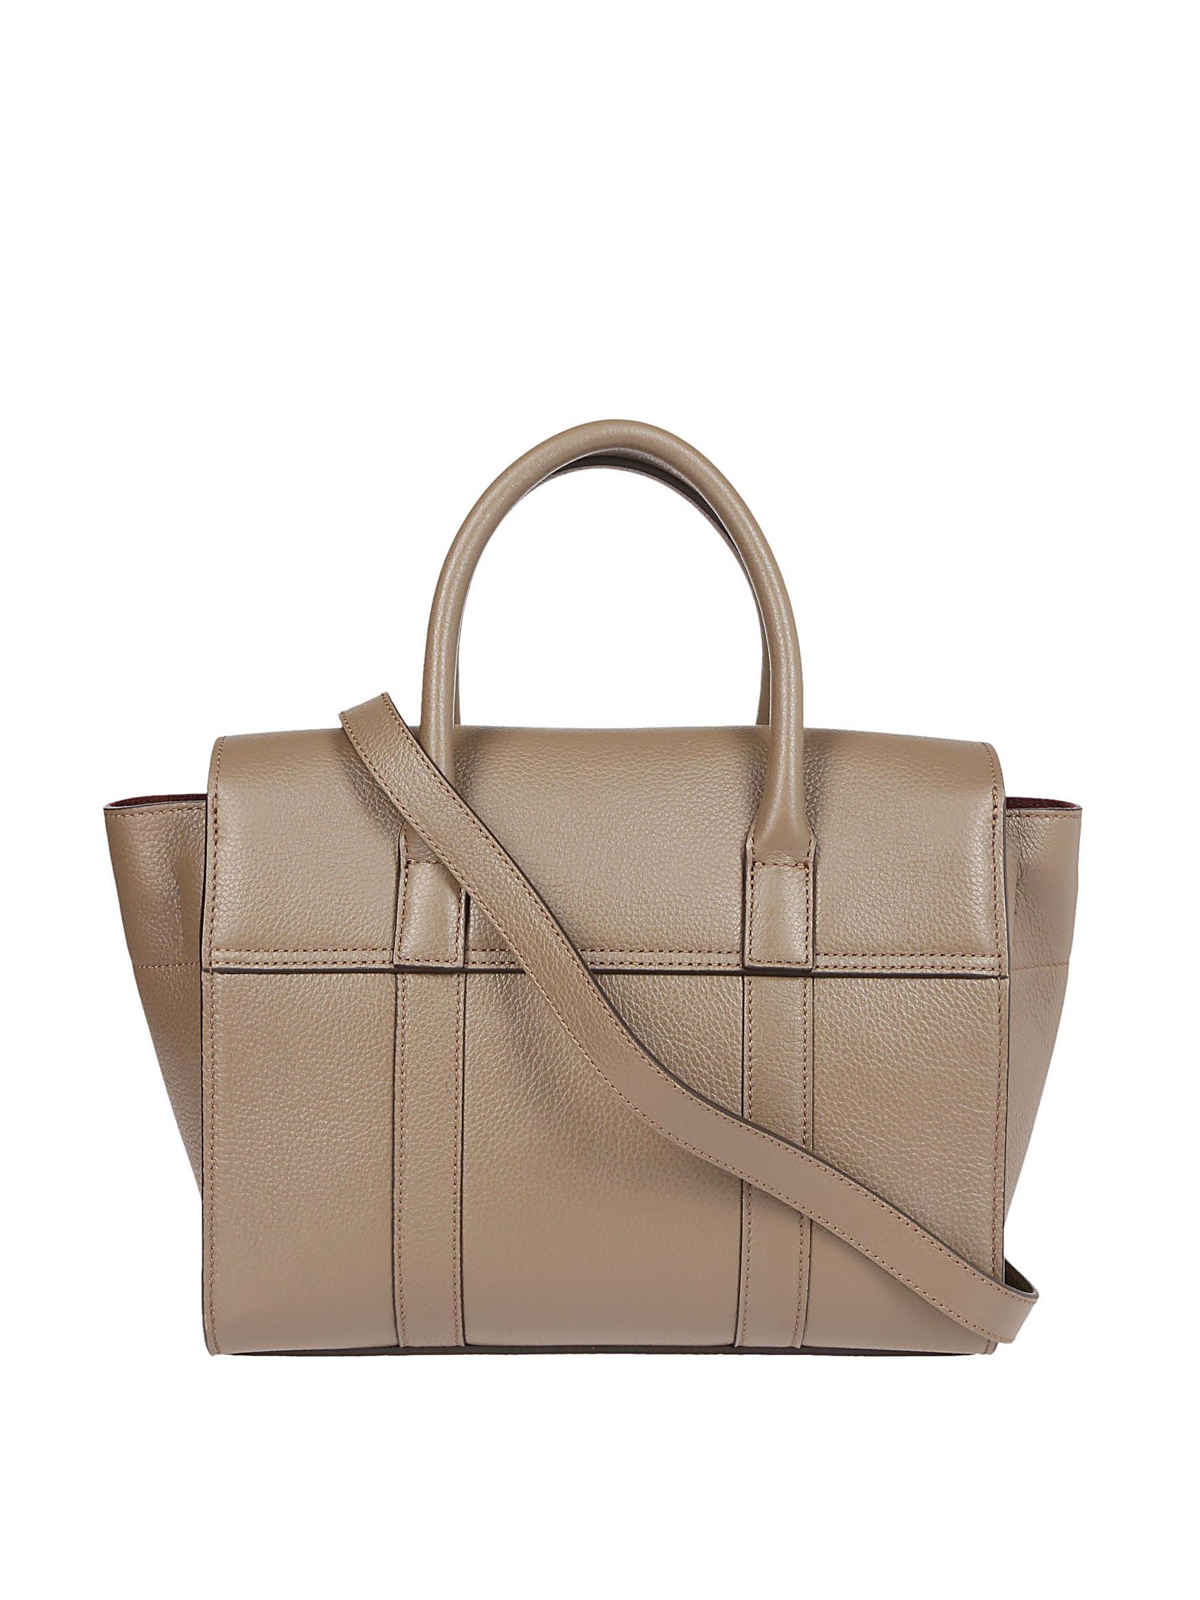 Mulberry - Small Bayswater Clay Grain Leather Bag -5457